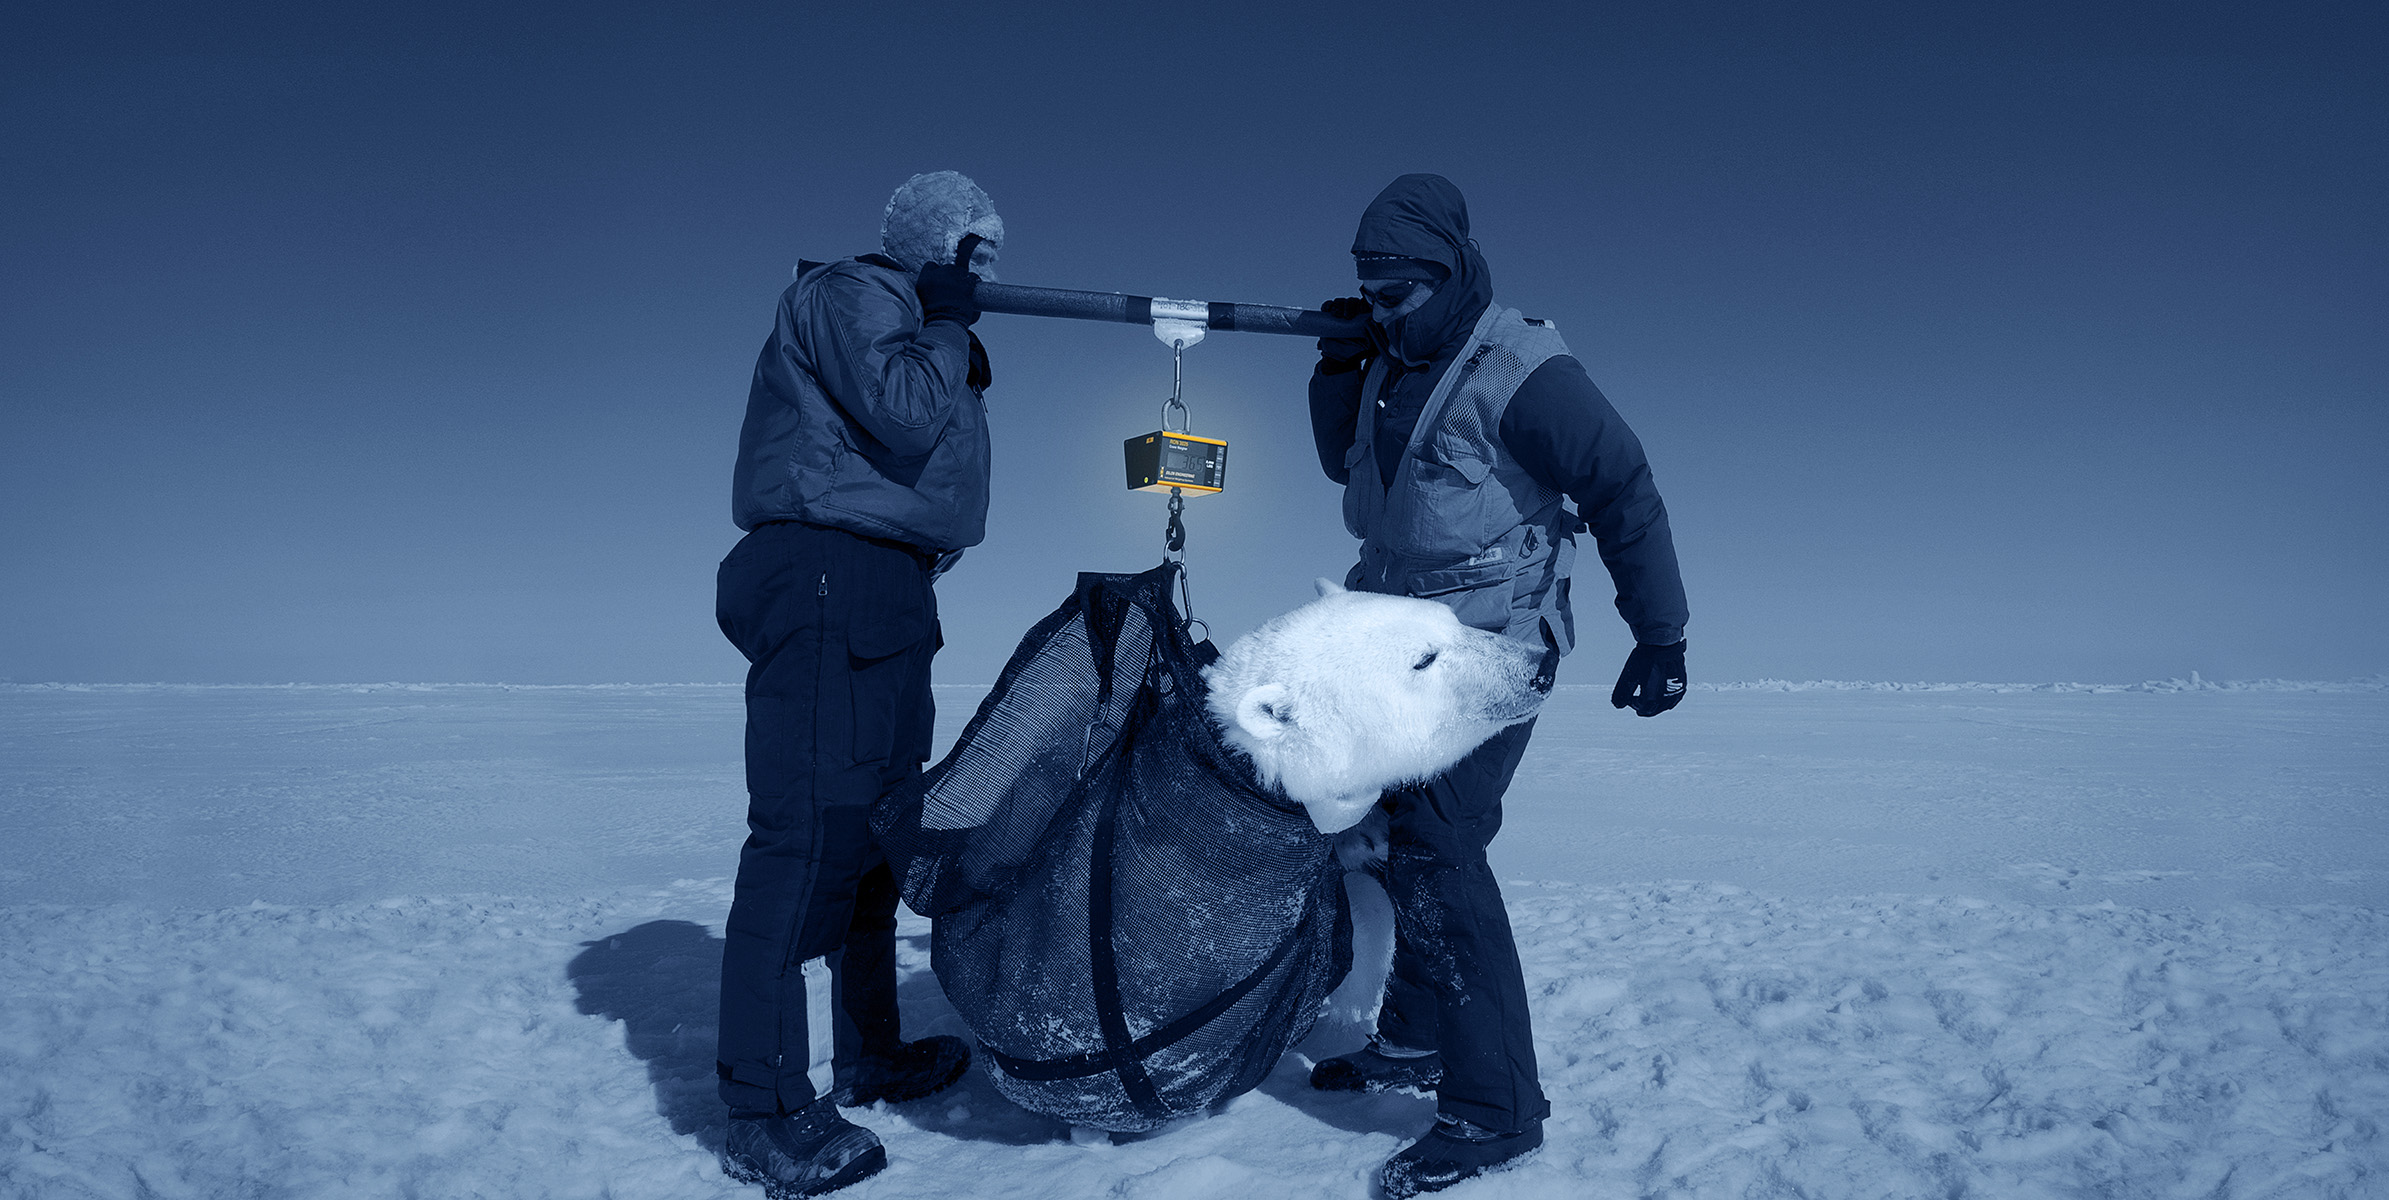 Two scientist use a bar to lift polar bear for weighing